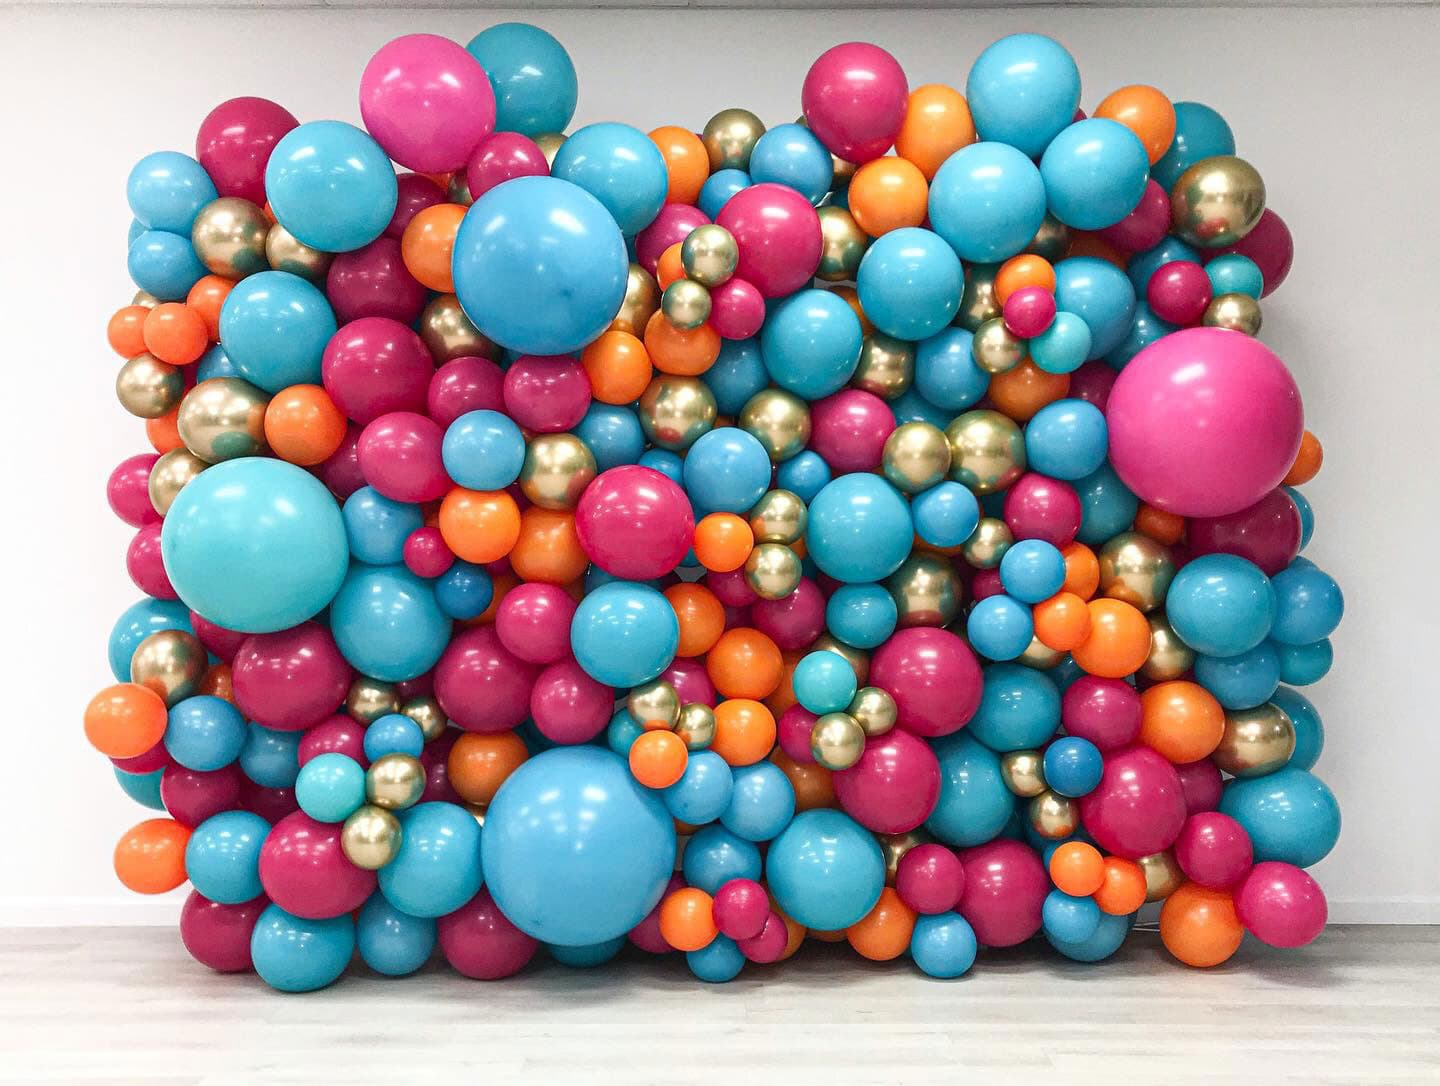 Wall of Balloons display art piece decoration for event photoshoot wedding corporate photobooth minimalist